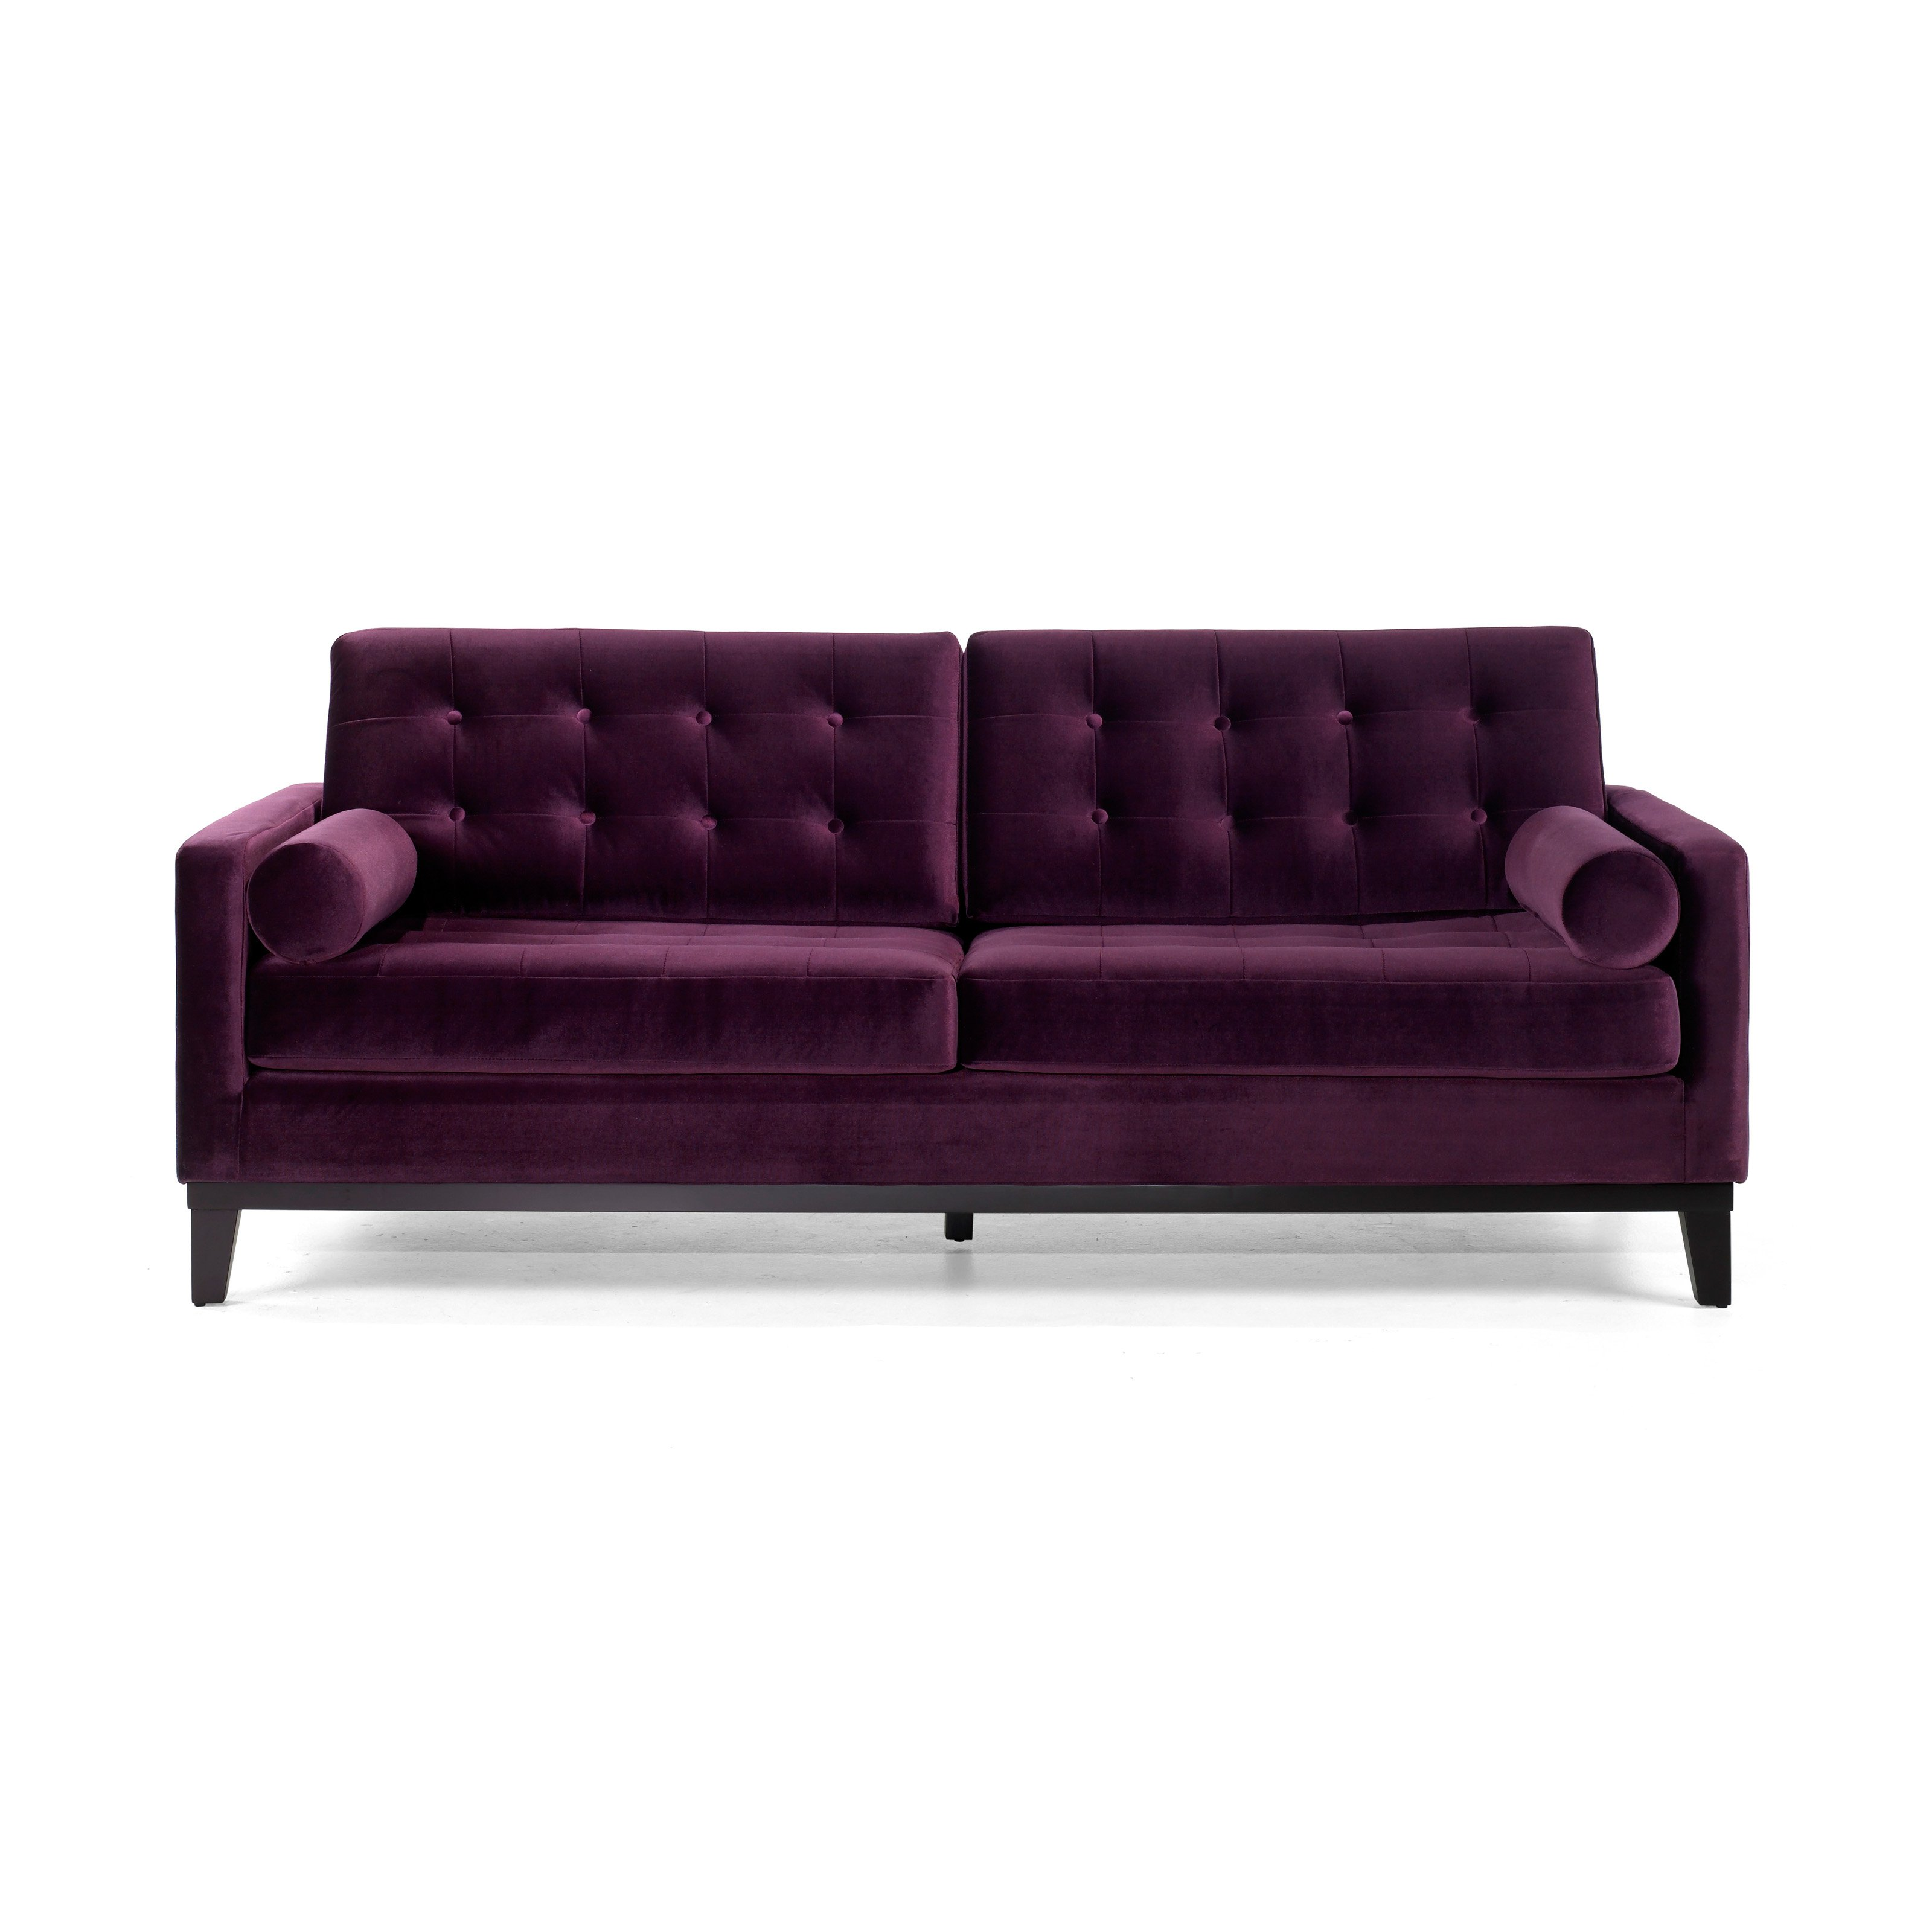 Armen Living Centennial Purple Velvet Sofa by Armen Living